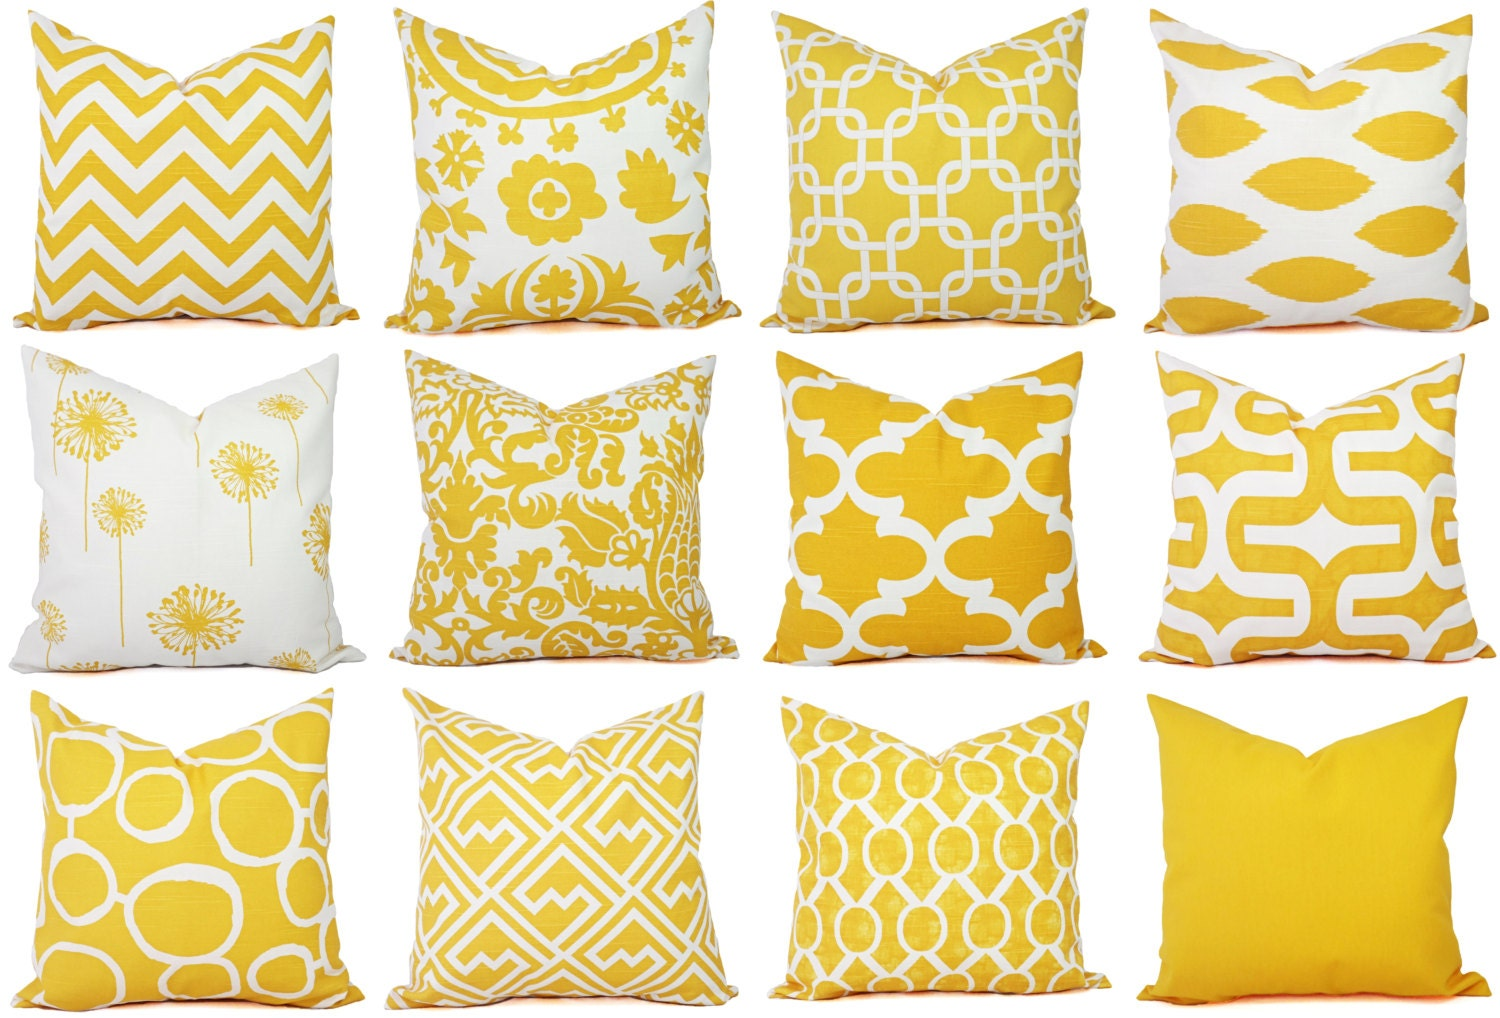 Yellow Decorative Pillows For Sofa : Yellow Couch Pillow Covers Decorative Pillows Yellow and